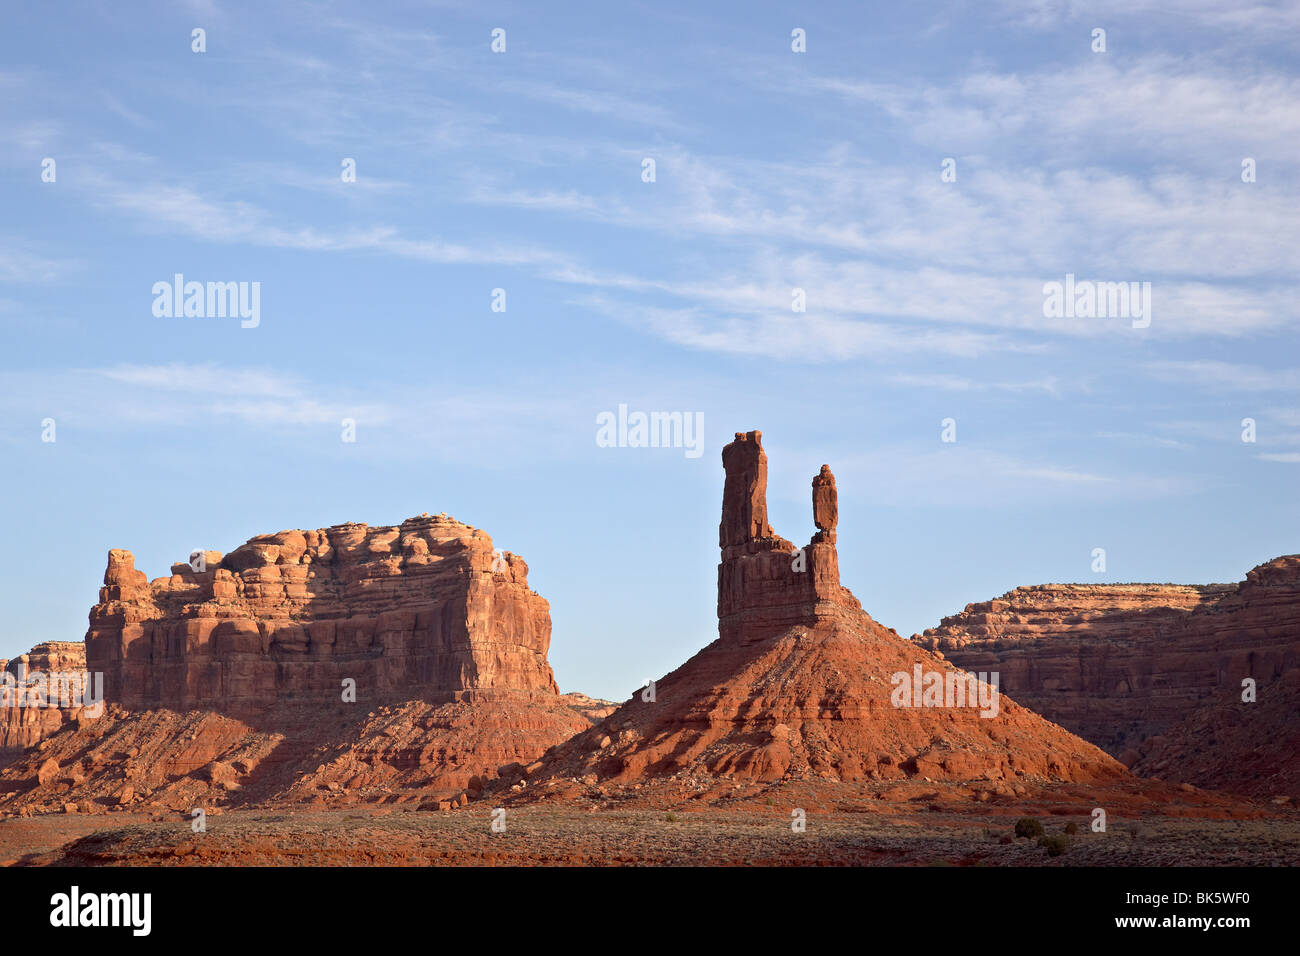 Rock formations, Valley of the Gods, Utah, United States of America, North America - Stock Image